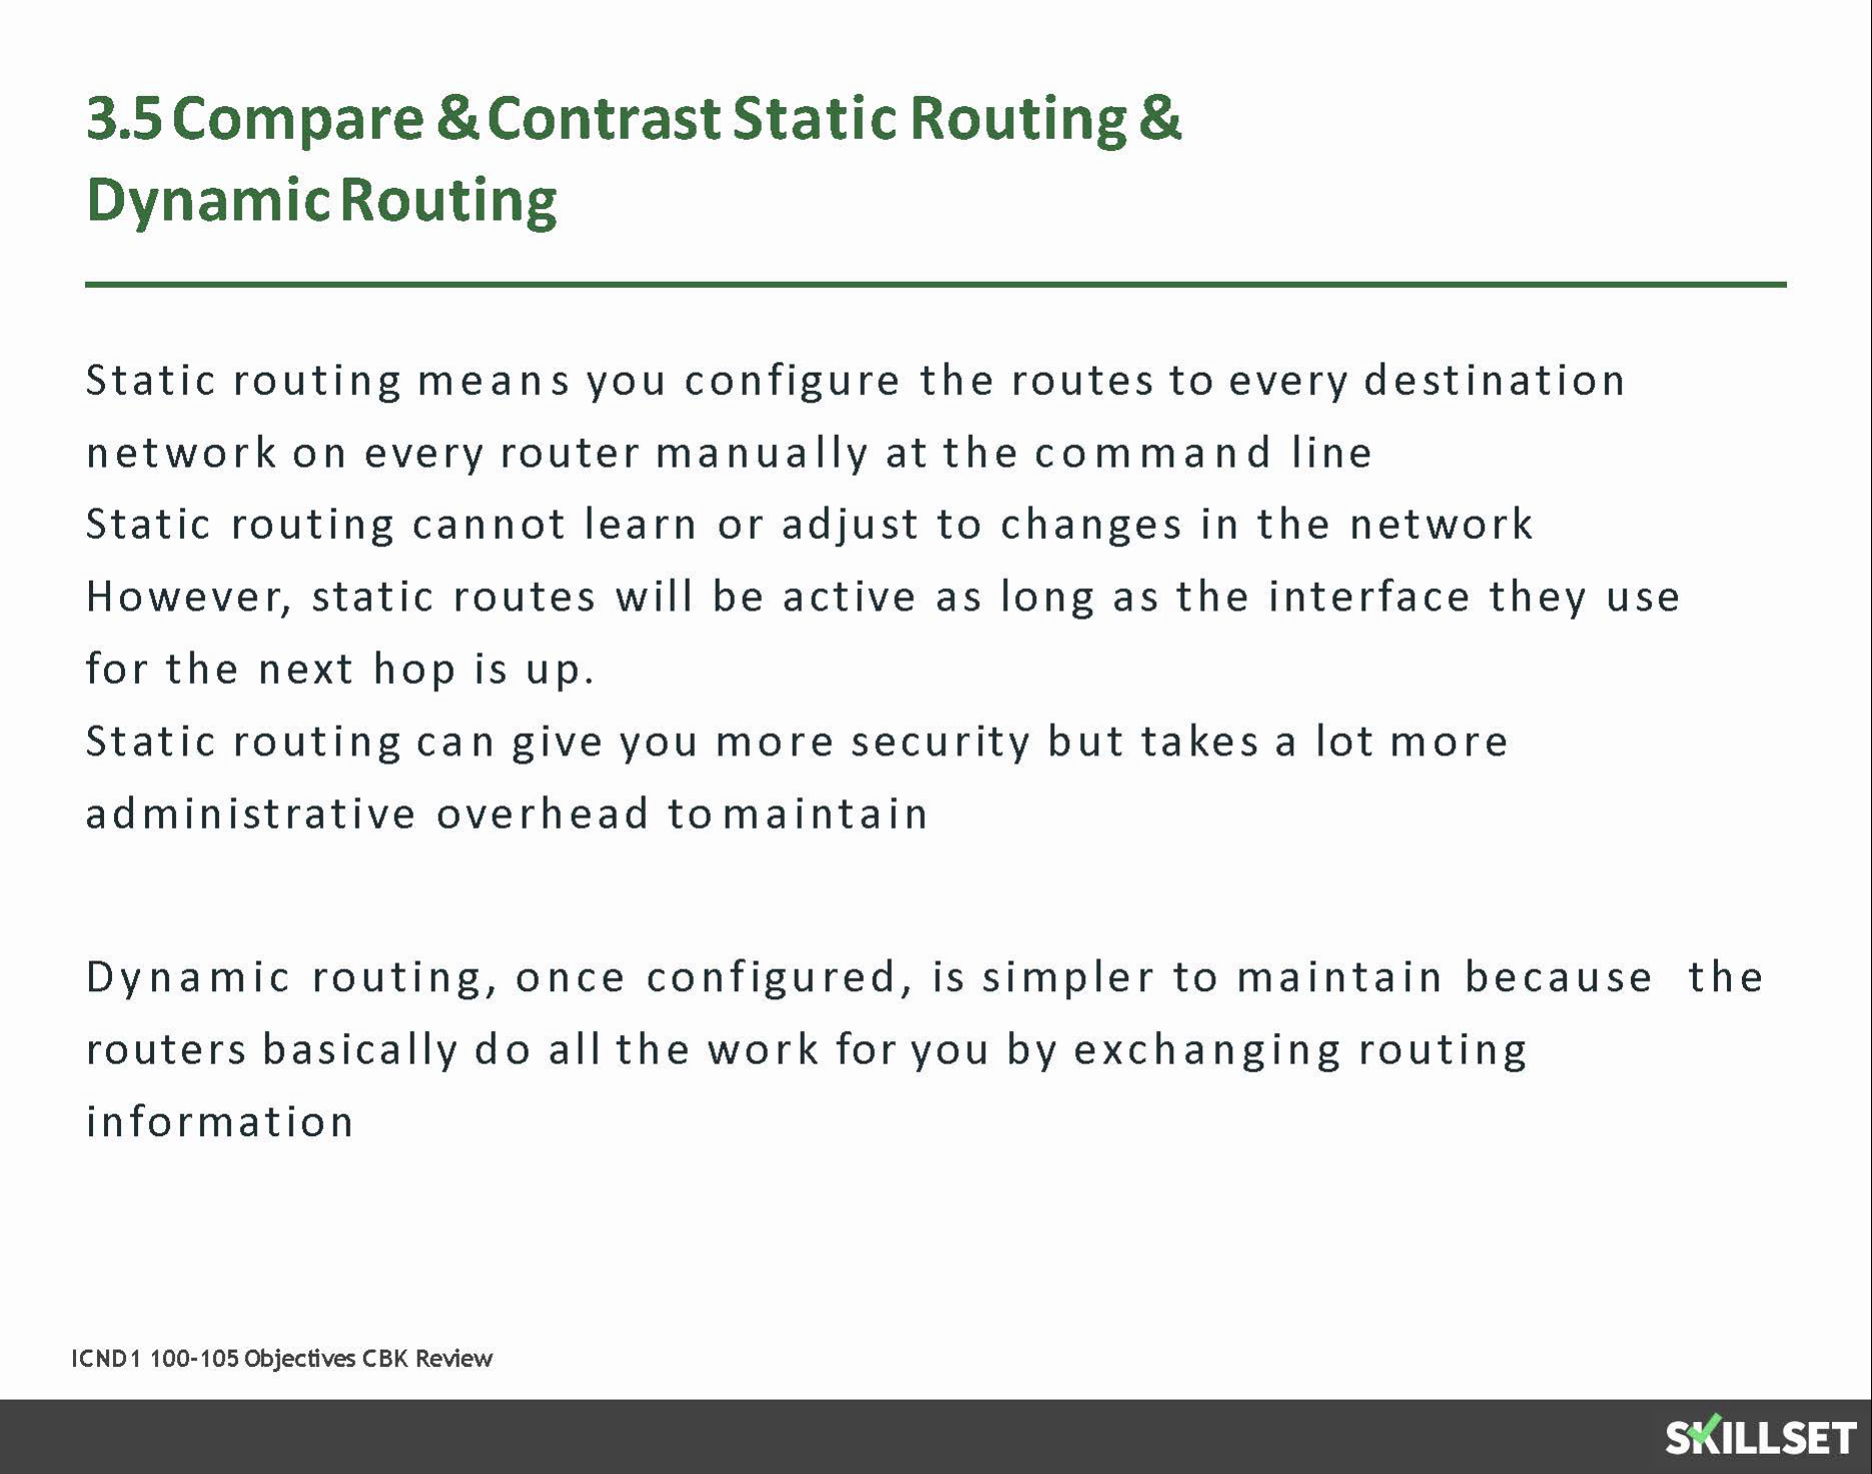 3.5-3.6 Static Routing